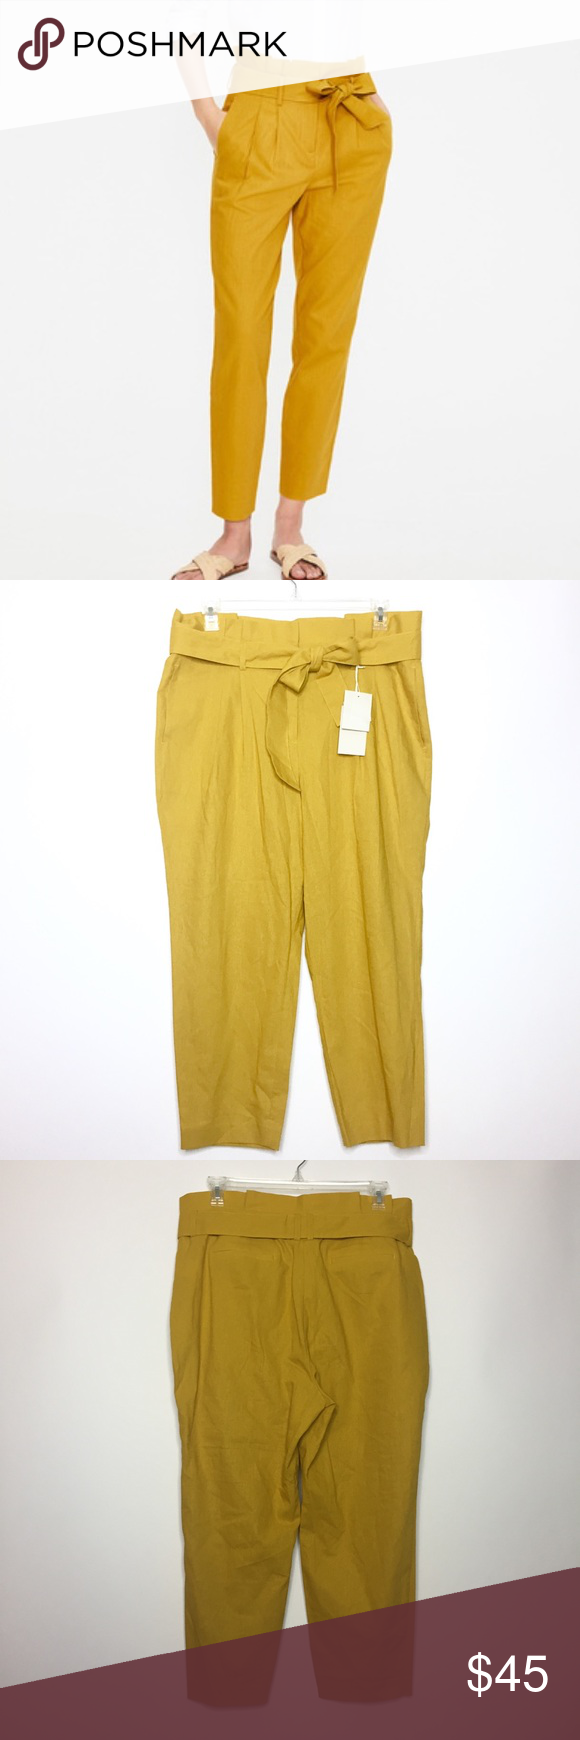 Boden St. Ives Paperbag Pants in Mustard Yellow 14 Excellent condition! NWT! Mus…